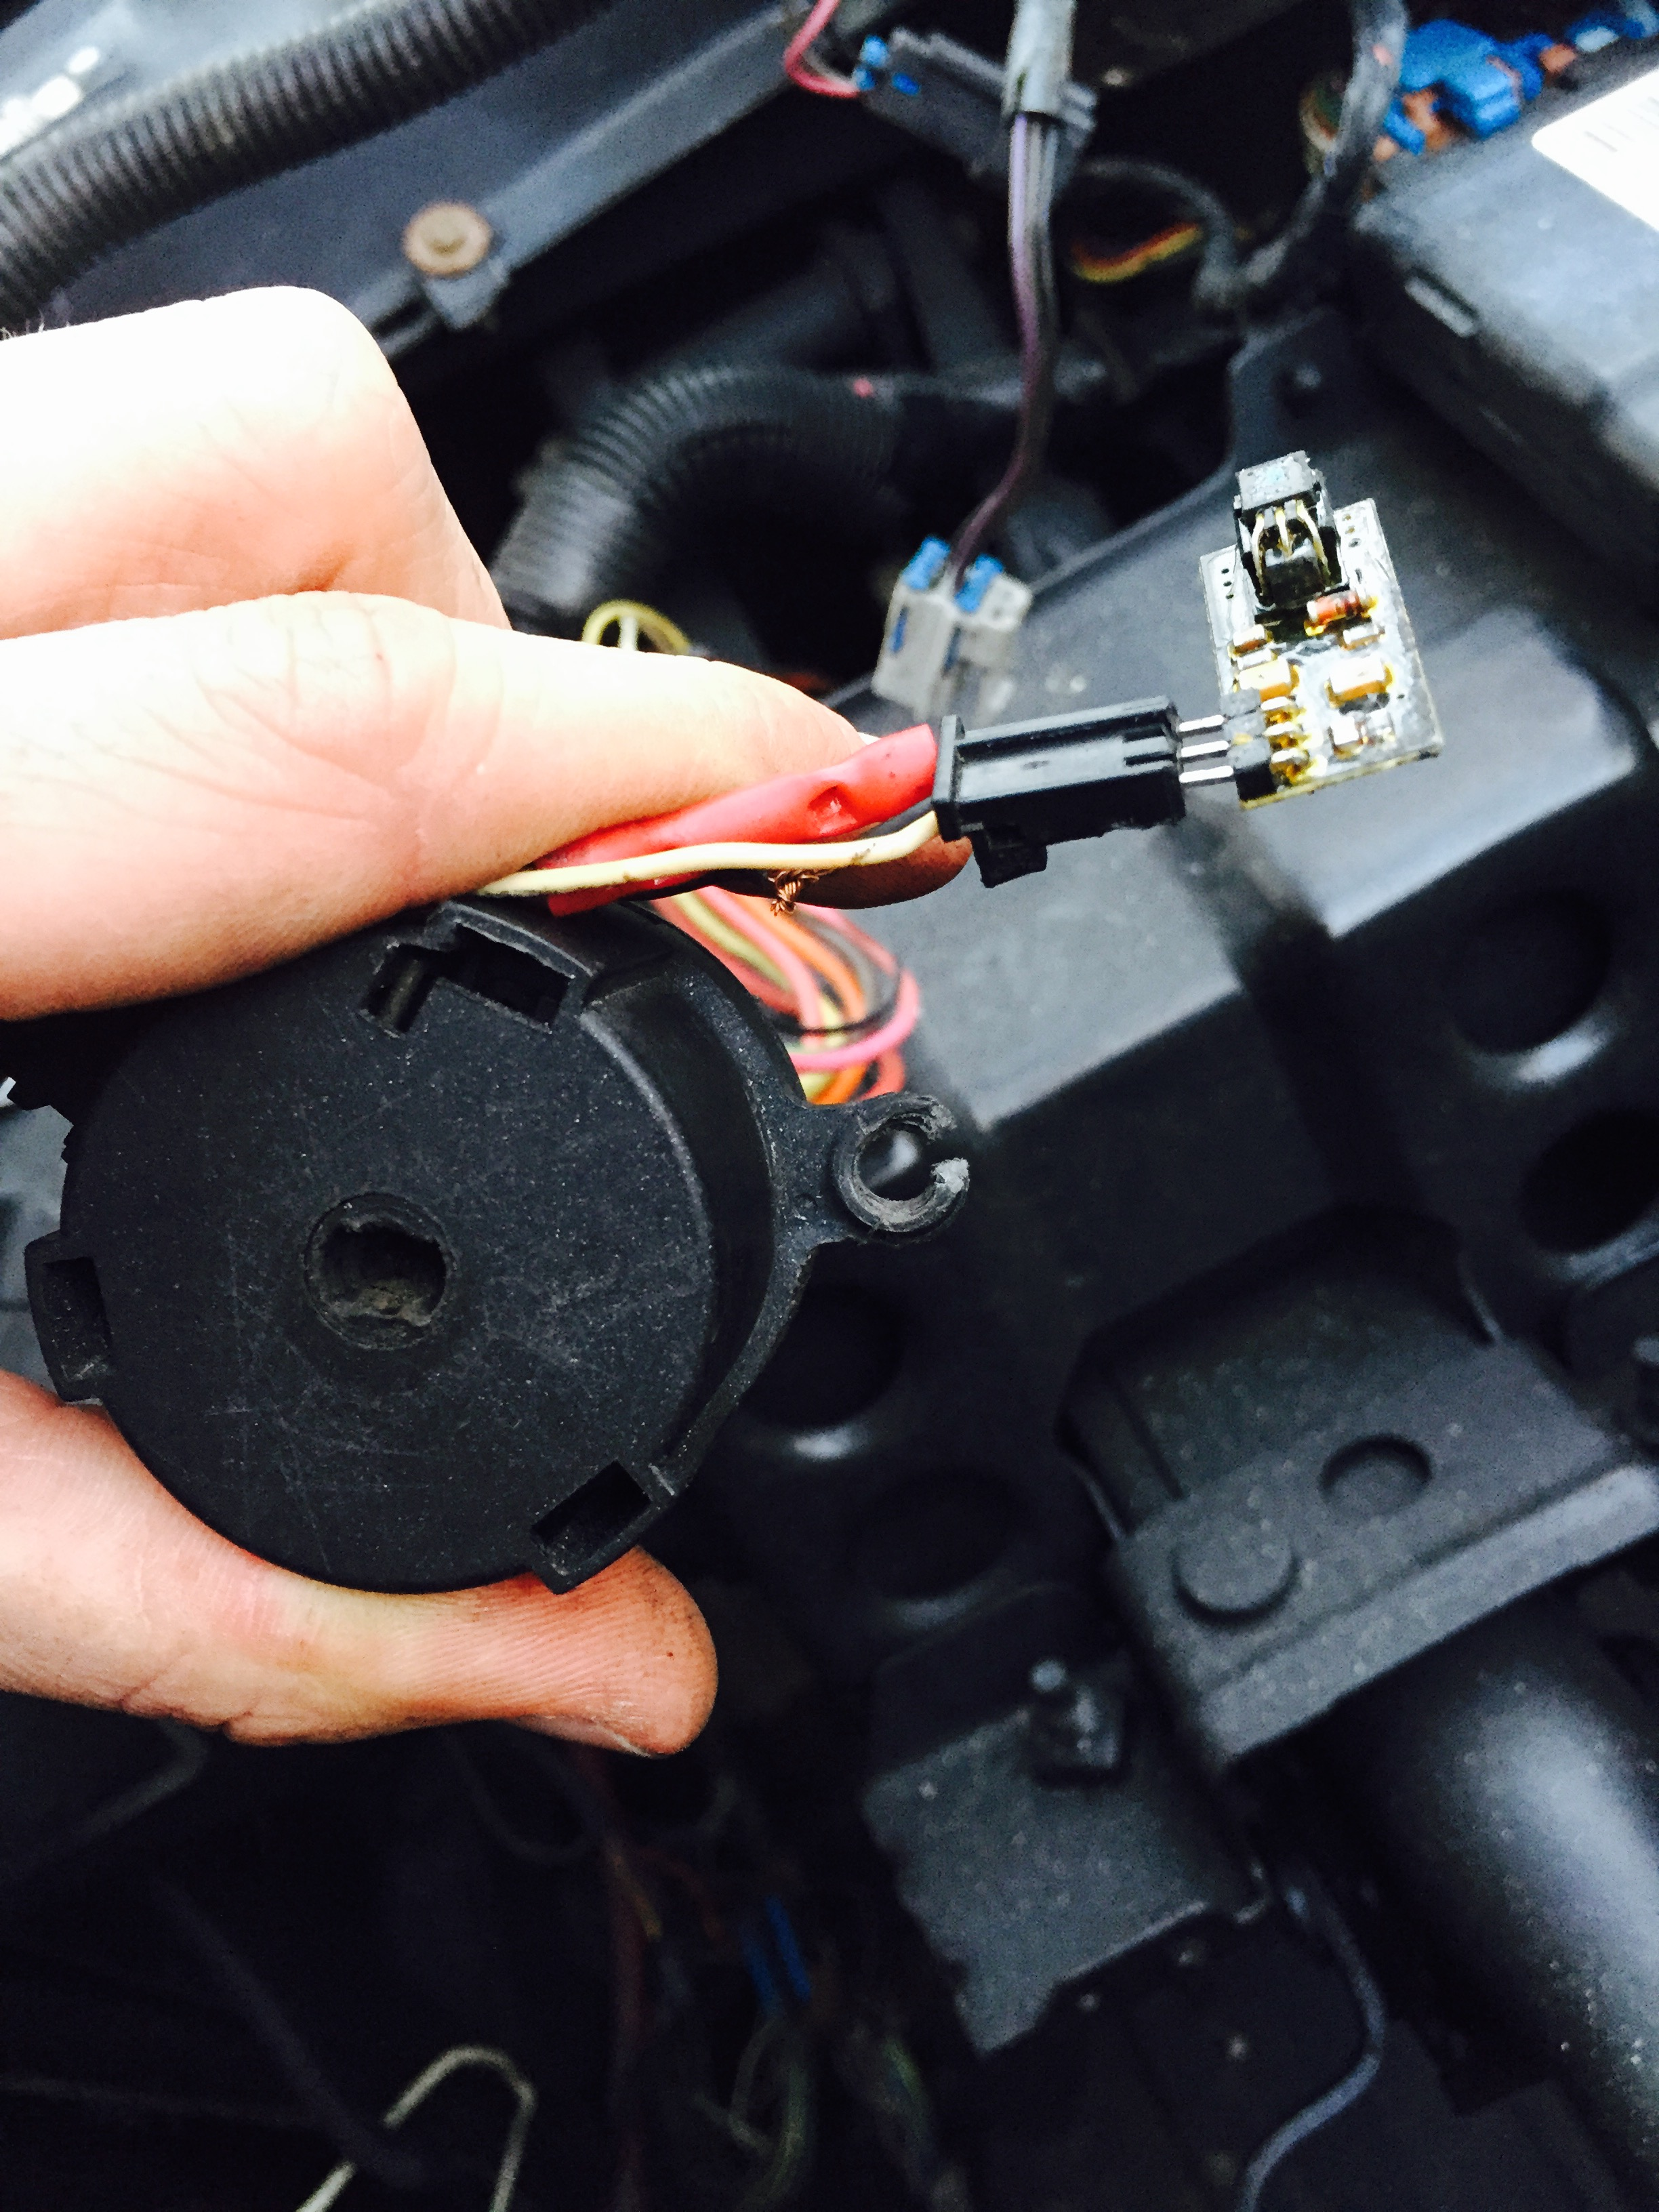 1999 saturn sl2 ignition wiring diagram vw golf mk6 2000 fuel cell forum enthusiasts forums